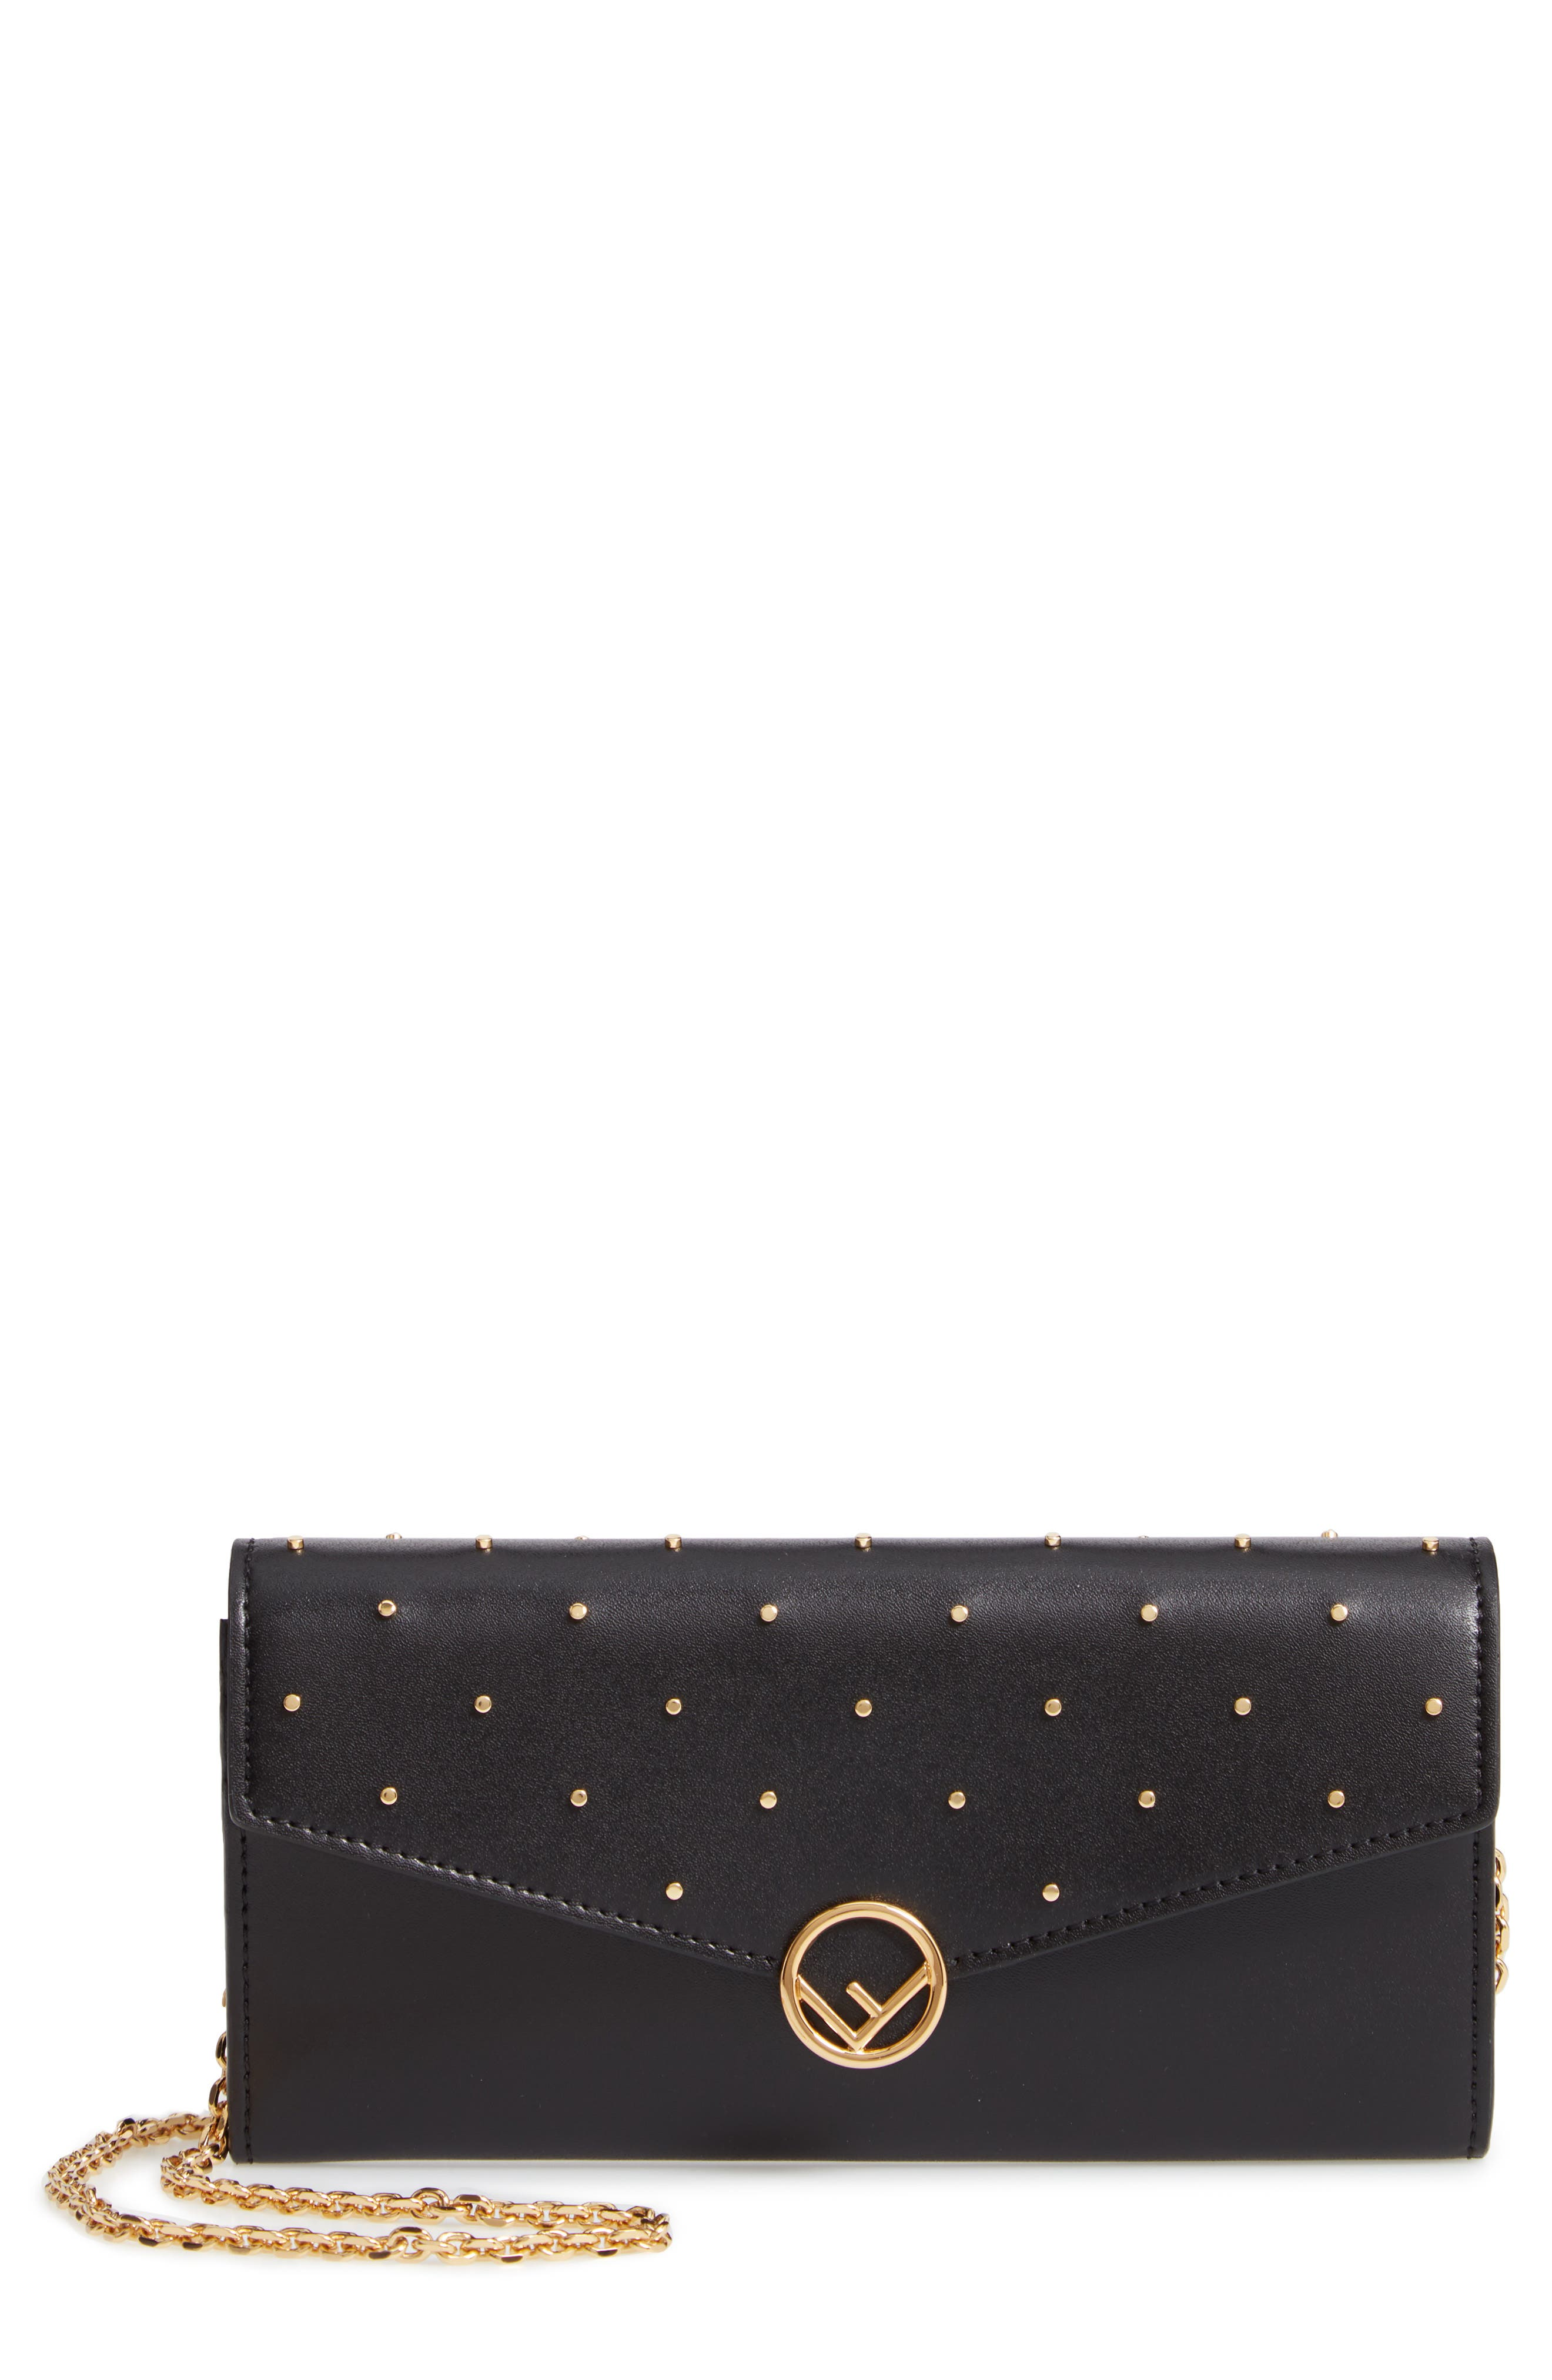 FENDI, Studded Calfskin Leather Continental Wallet on a Chain, Main thumbnail 1, color, 006